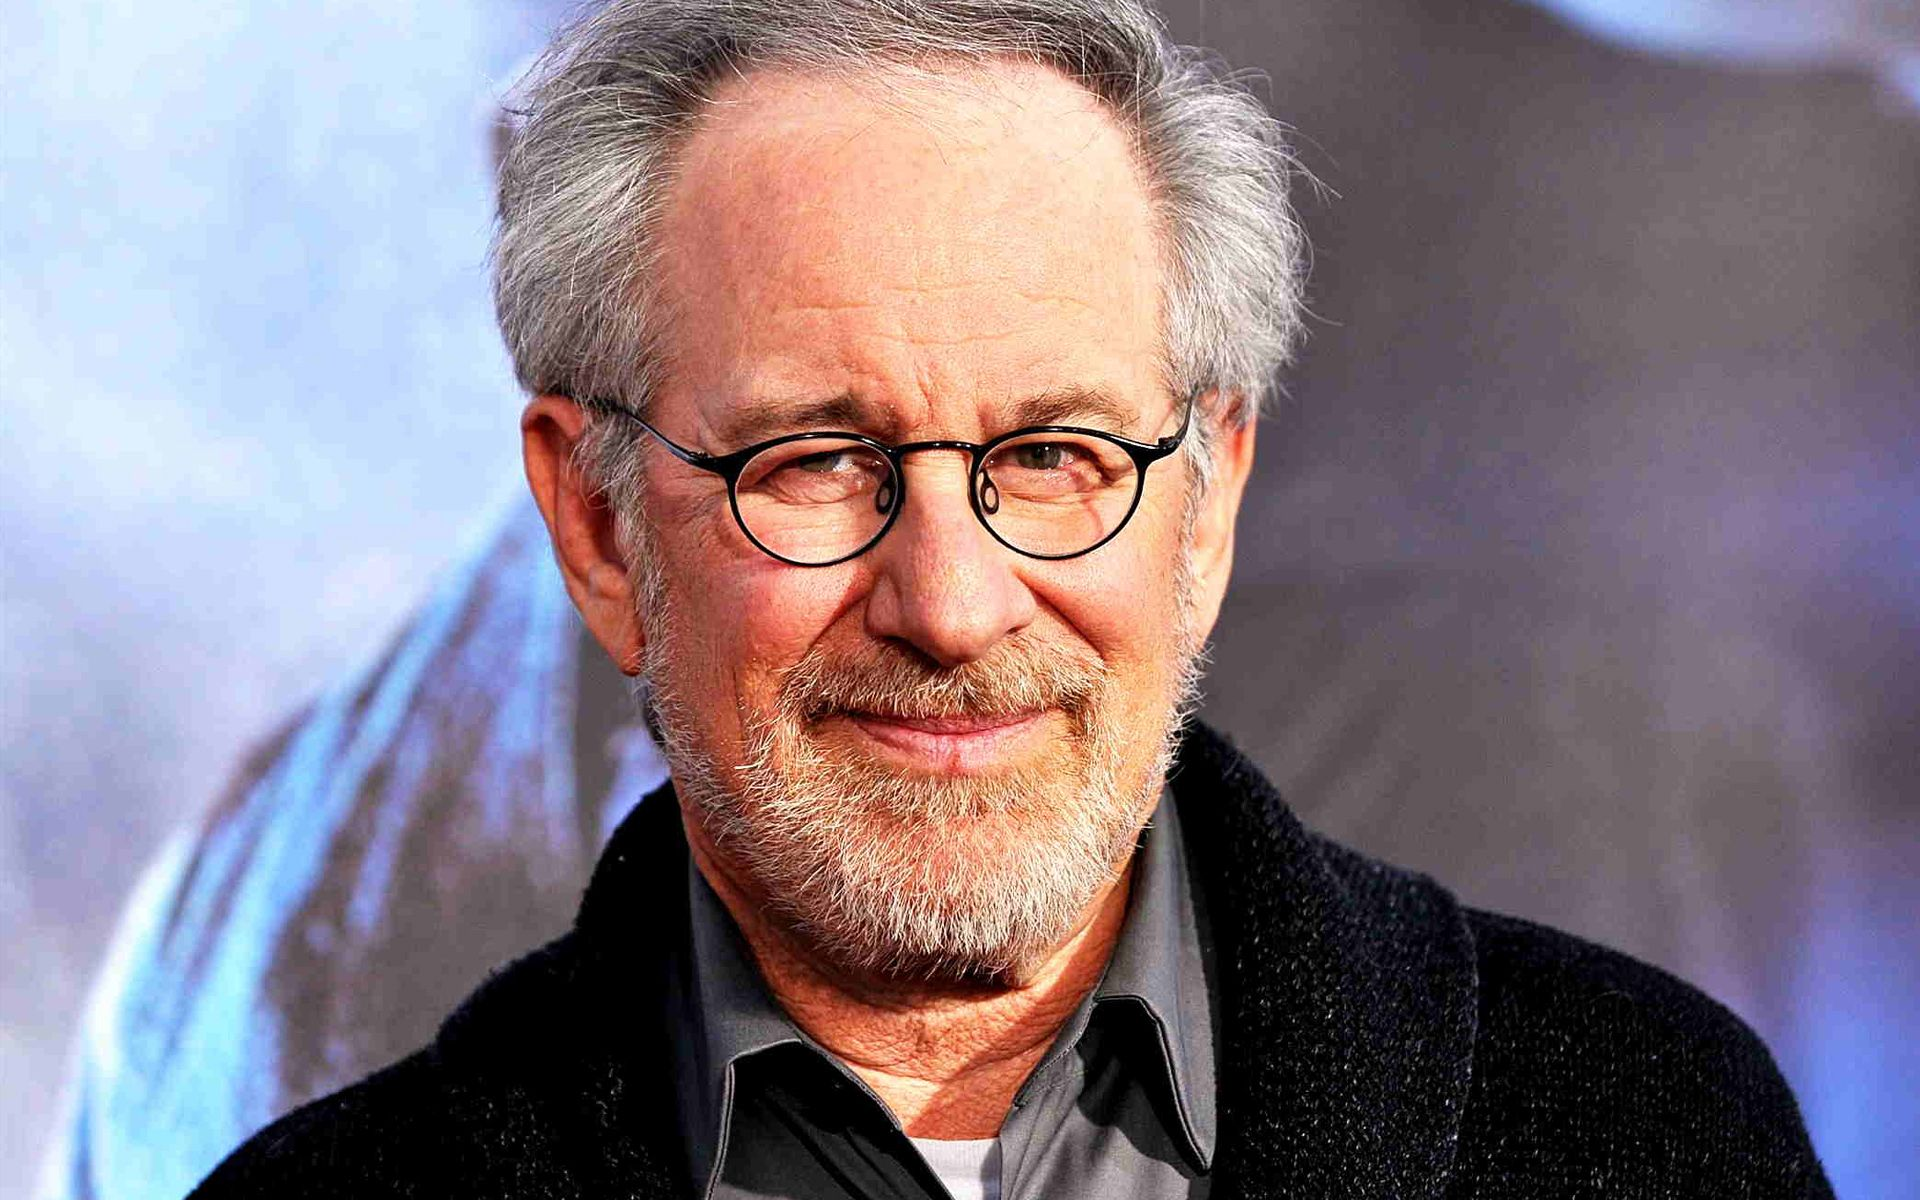 Steven Spielberg Net Worth A Richman Director And A Father